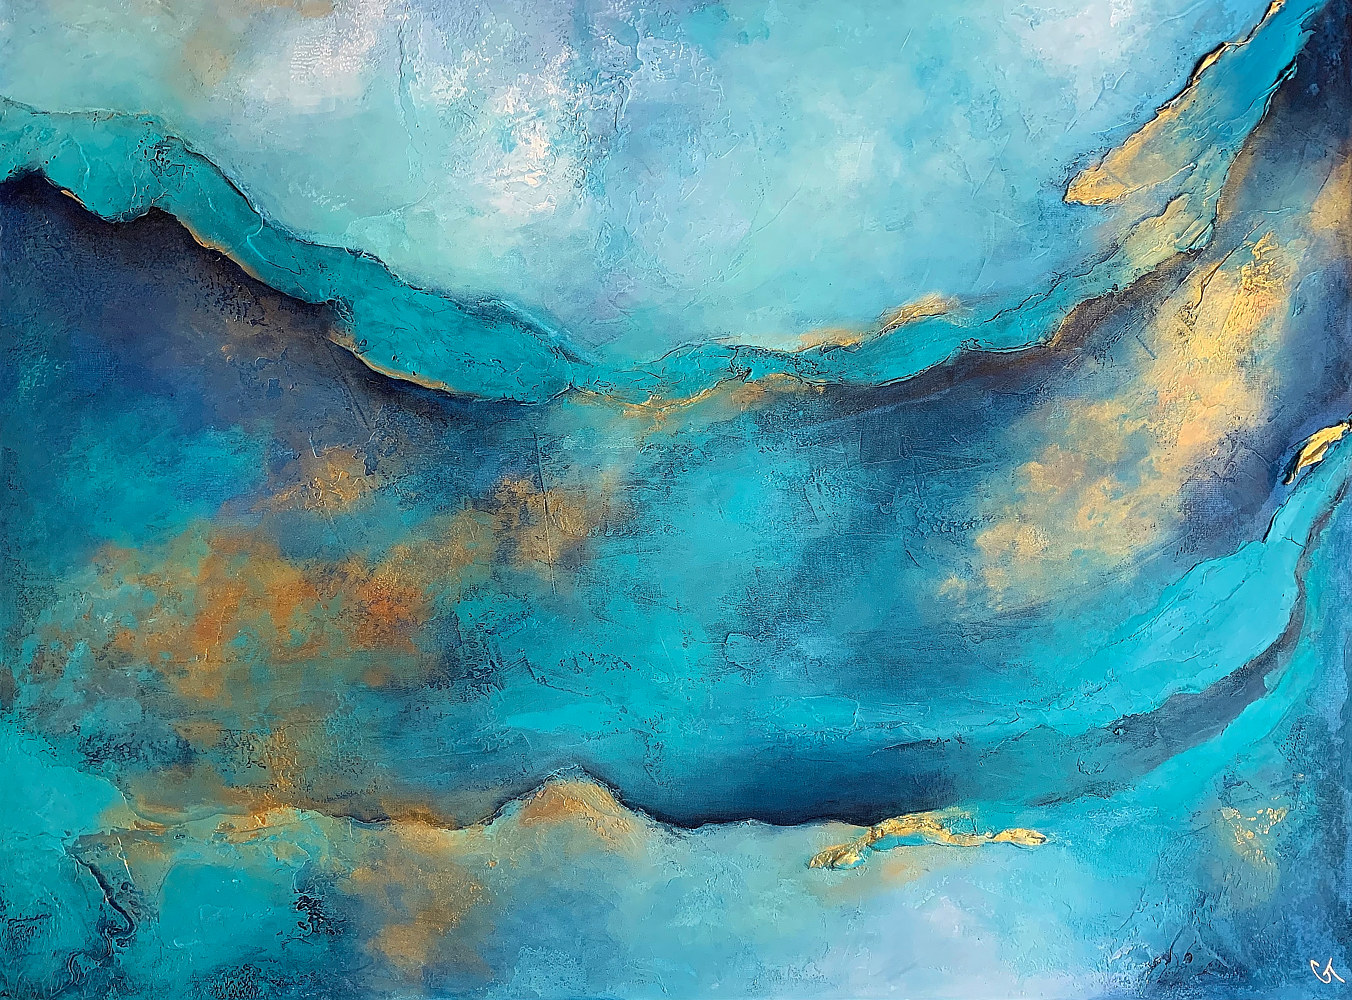 Acrylic painting Out of the Blue by Ginger Thomas